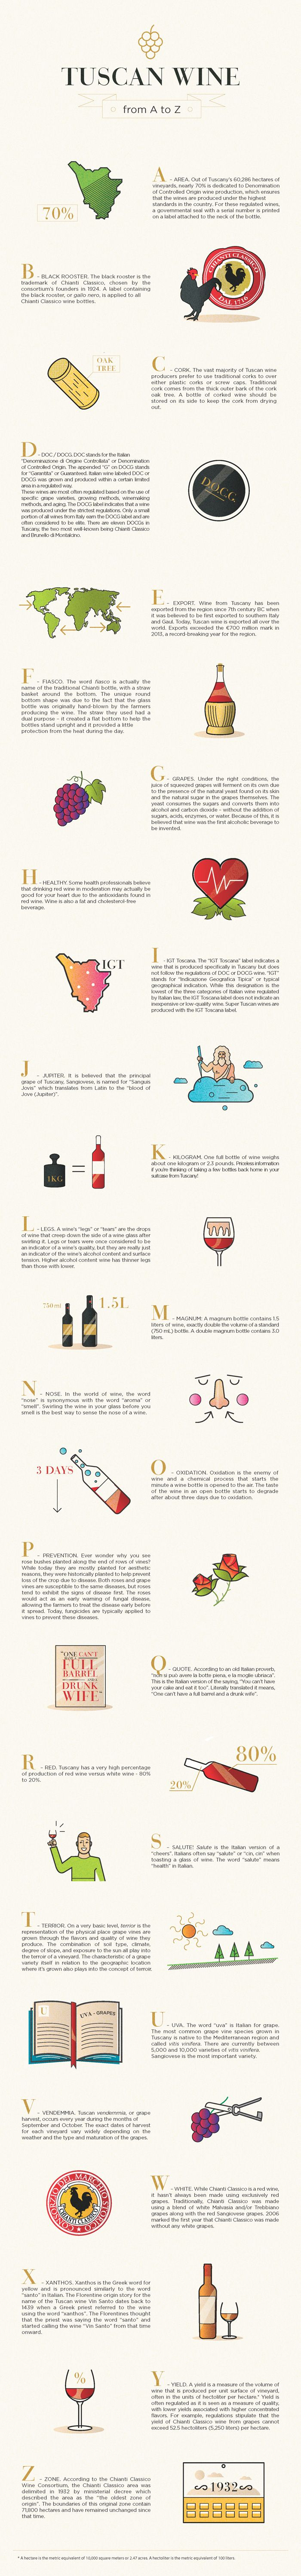 Tuscan wine from A to Z infographic by Dievole